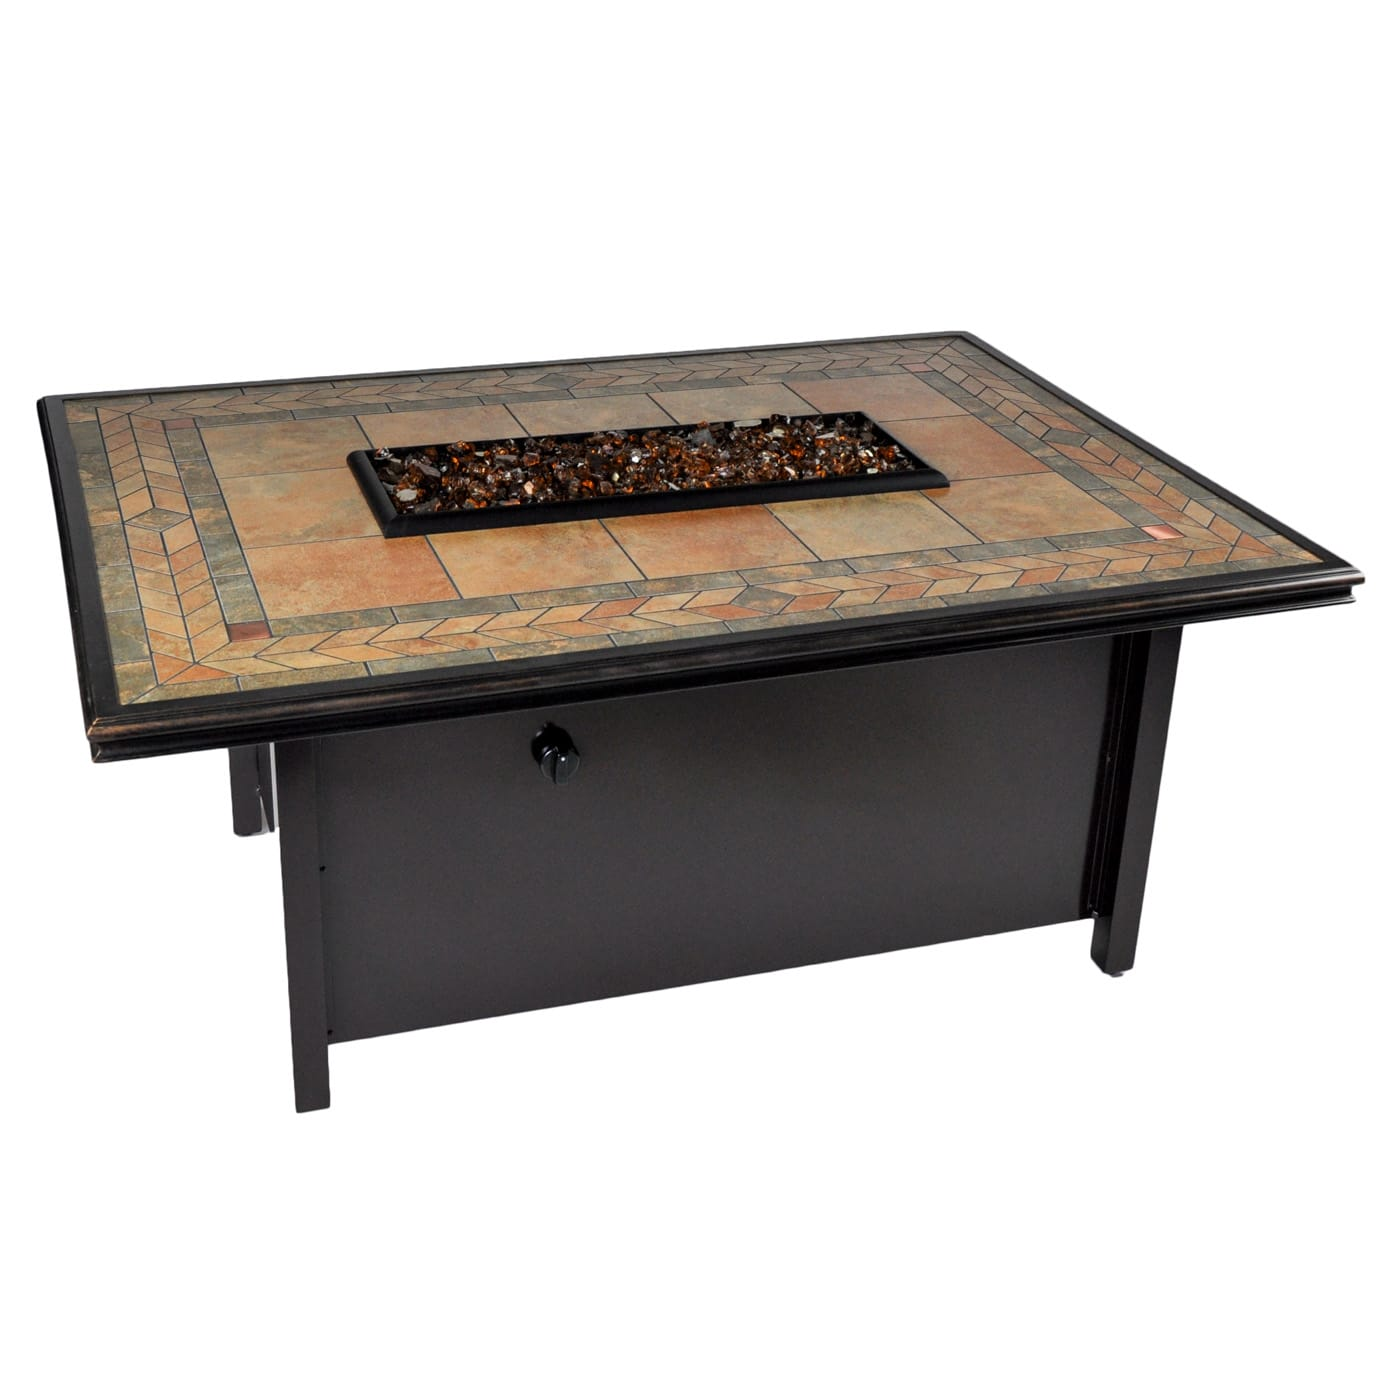 Tretco Panama 50 inch x 36 inch Fire Pit Table